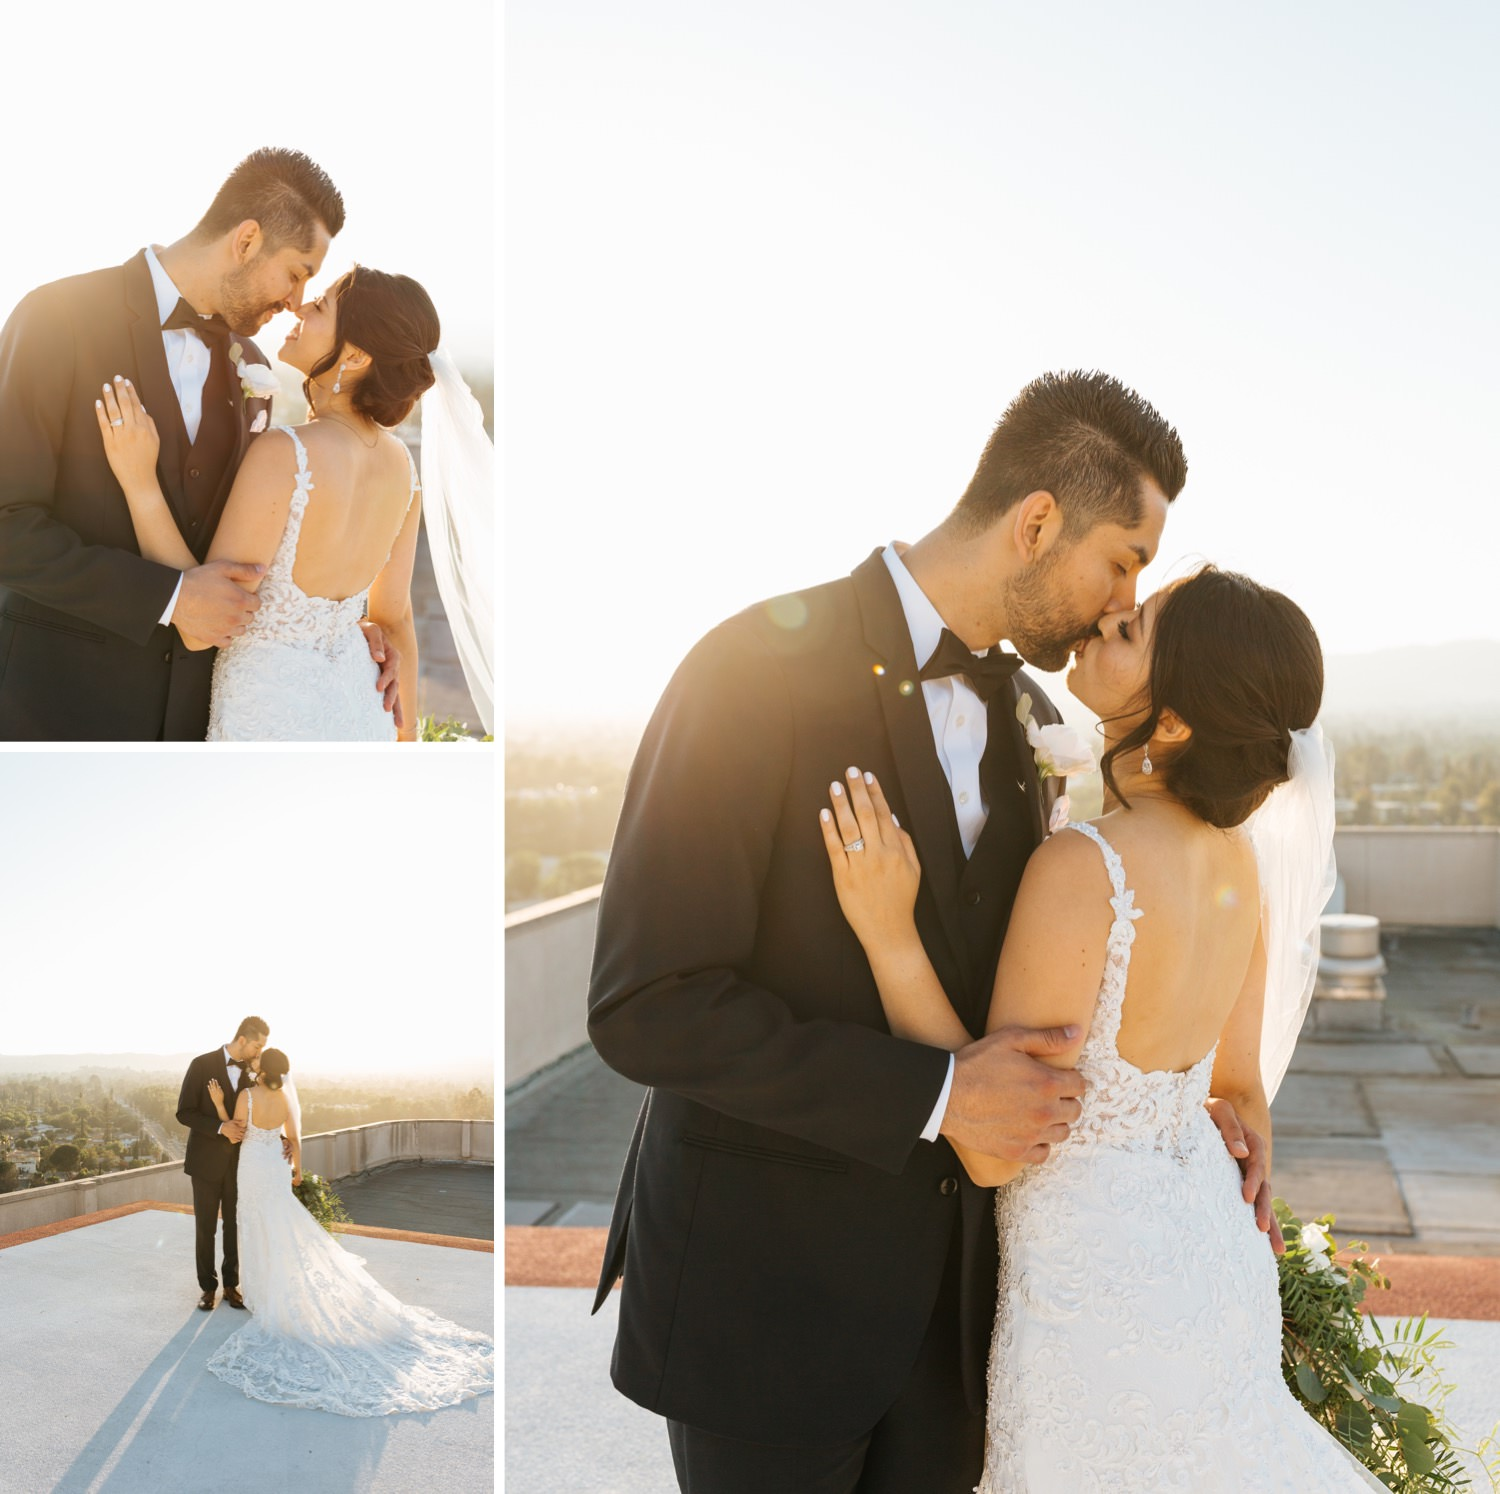 Bride and Groom LA rooftop photos - https://brittneyhannonphotography.com